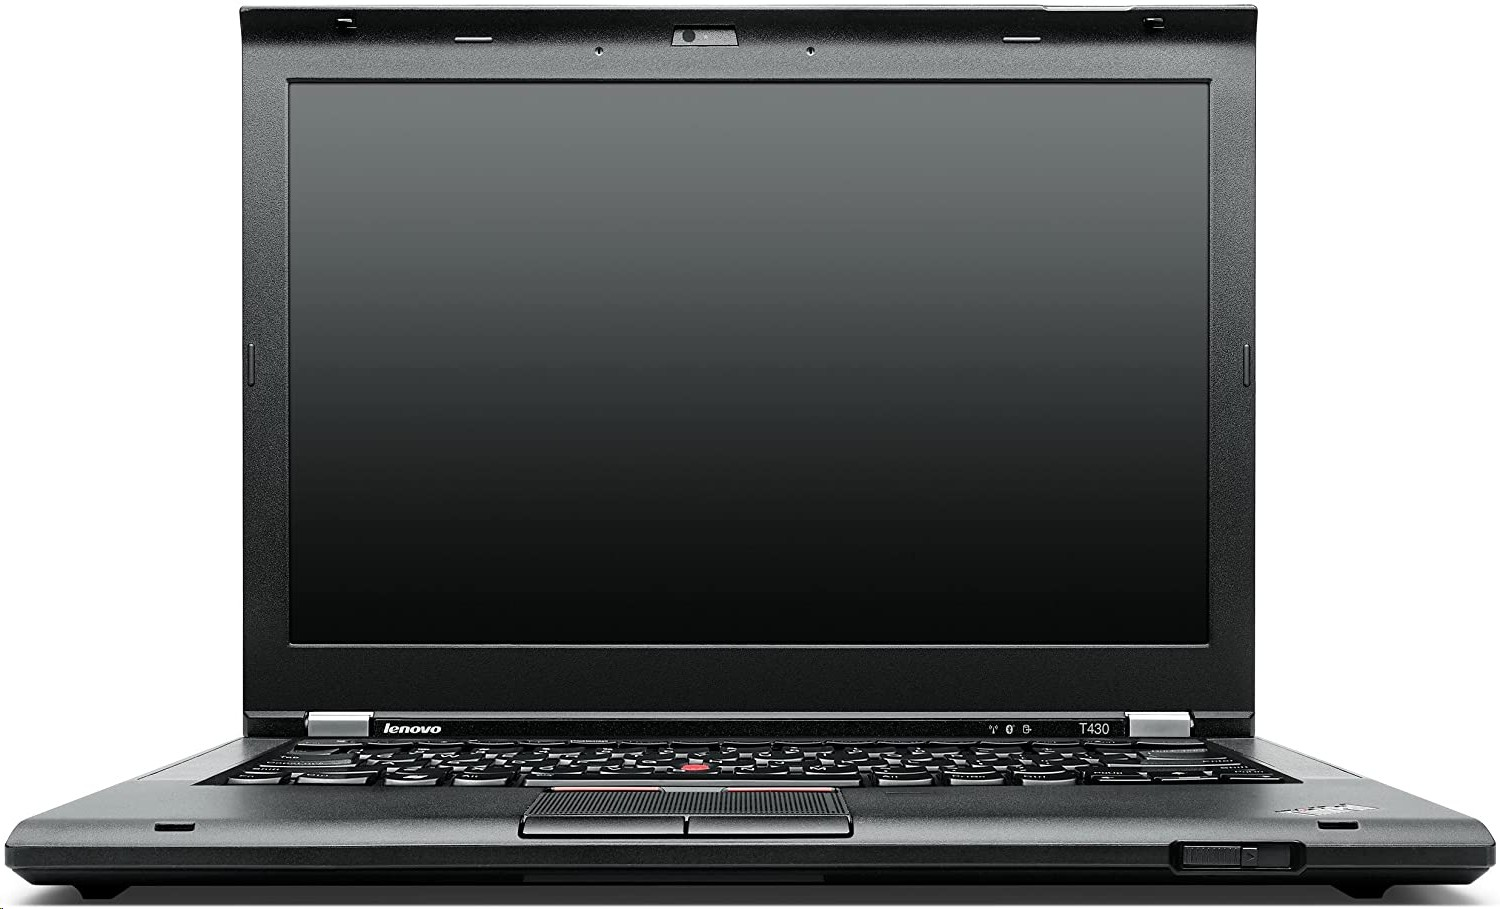 Lenovo ThinkPad T430 Intel Core i5-3320M 2.6GHz 4GB 320GB Non Touch 14 DVD W10P 2349-CW5